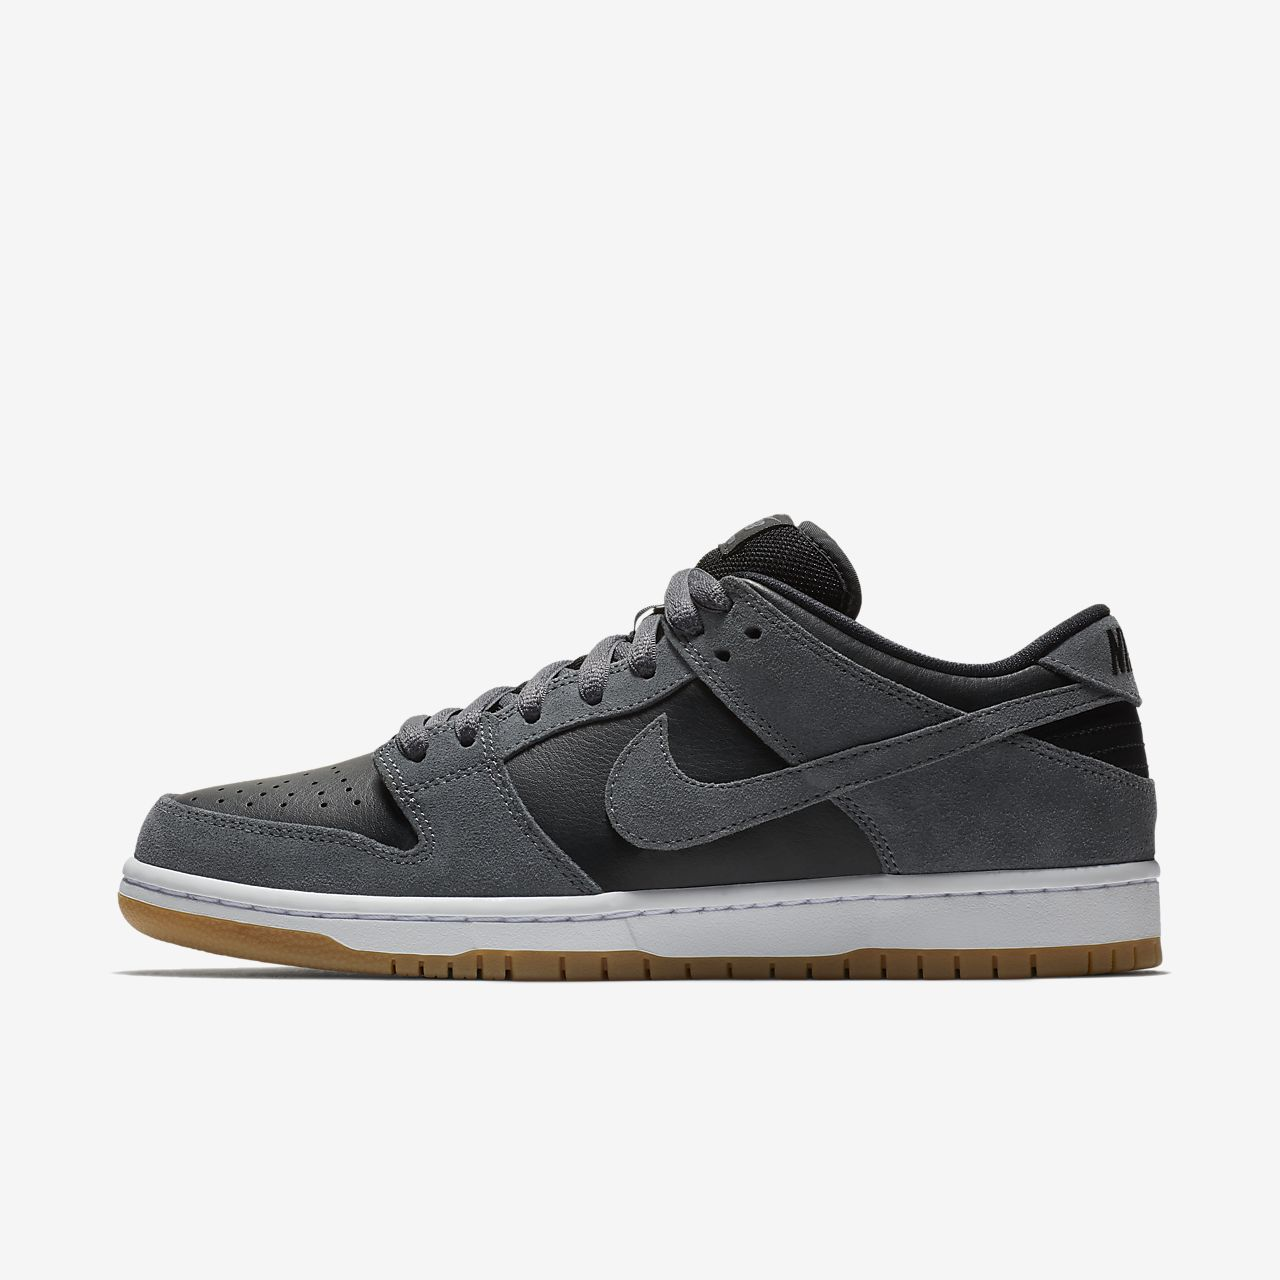 los angeles 738cc b7ed8 Nike SB Dunk Low TRD Men's Skateboarding Shoe